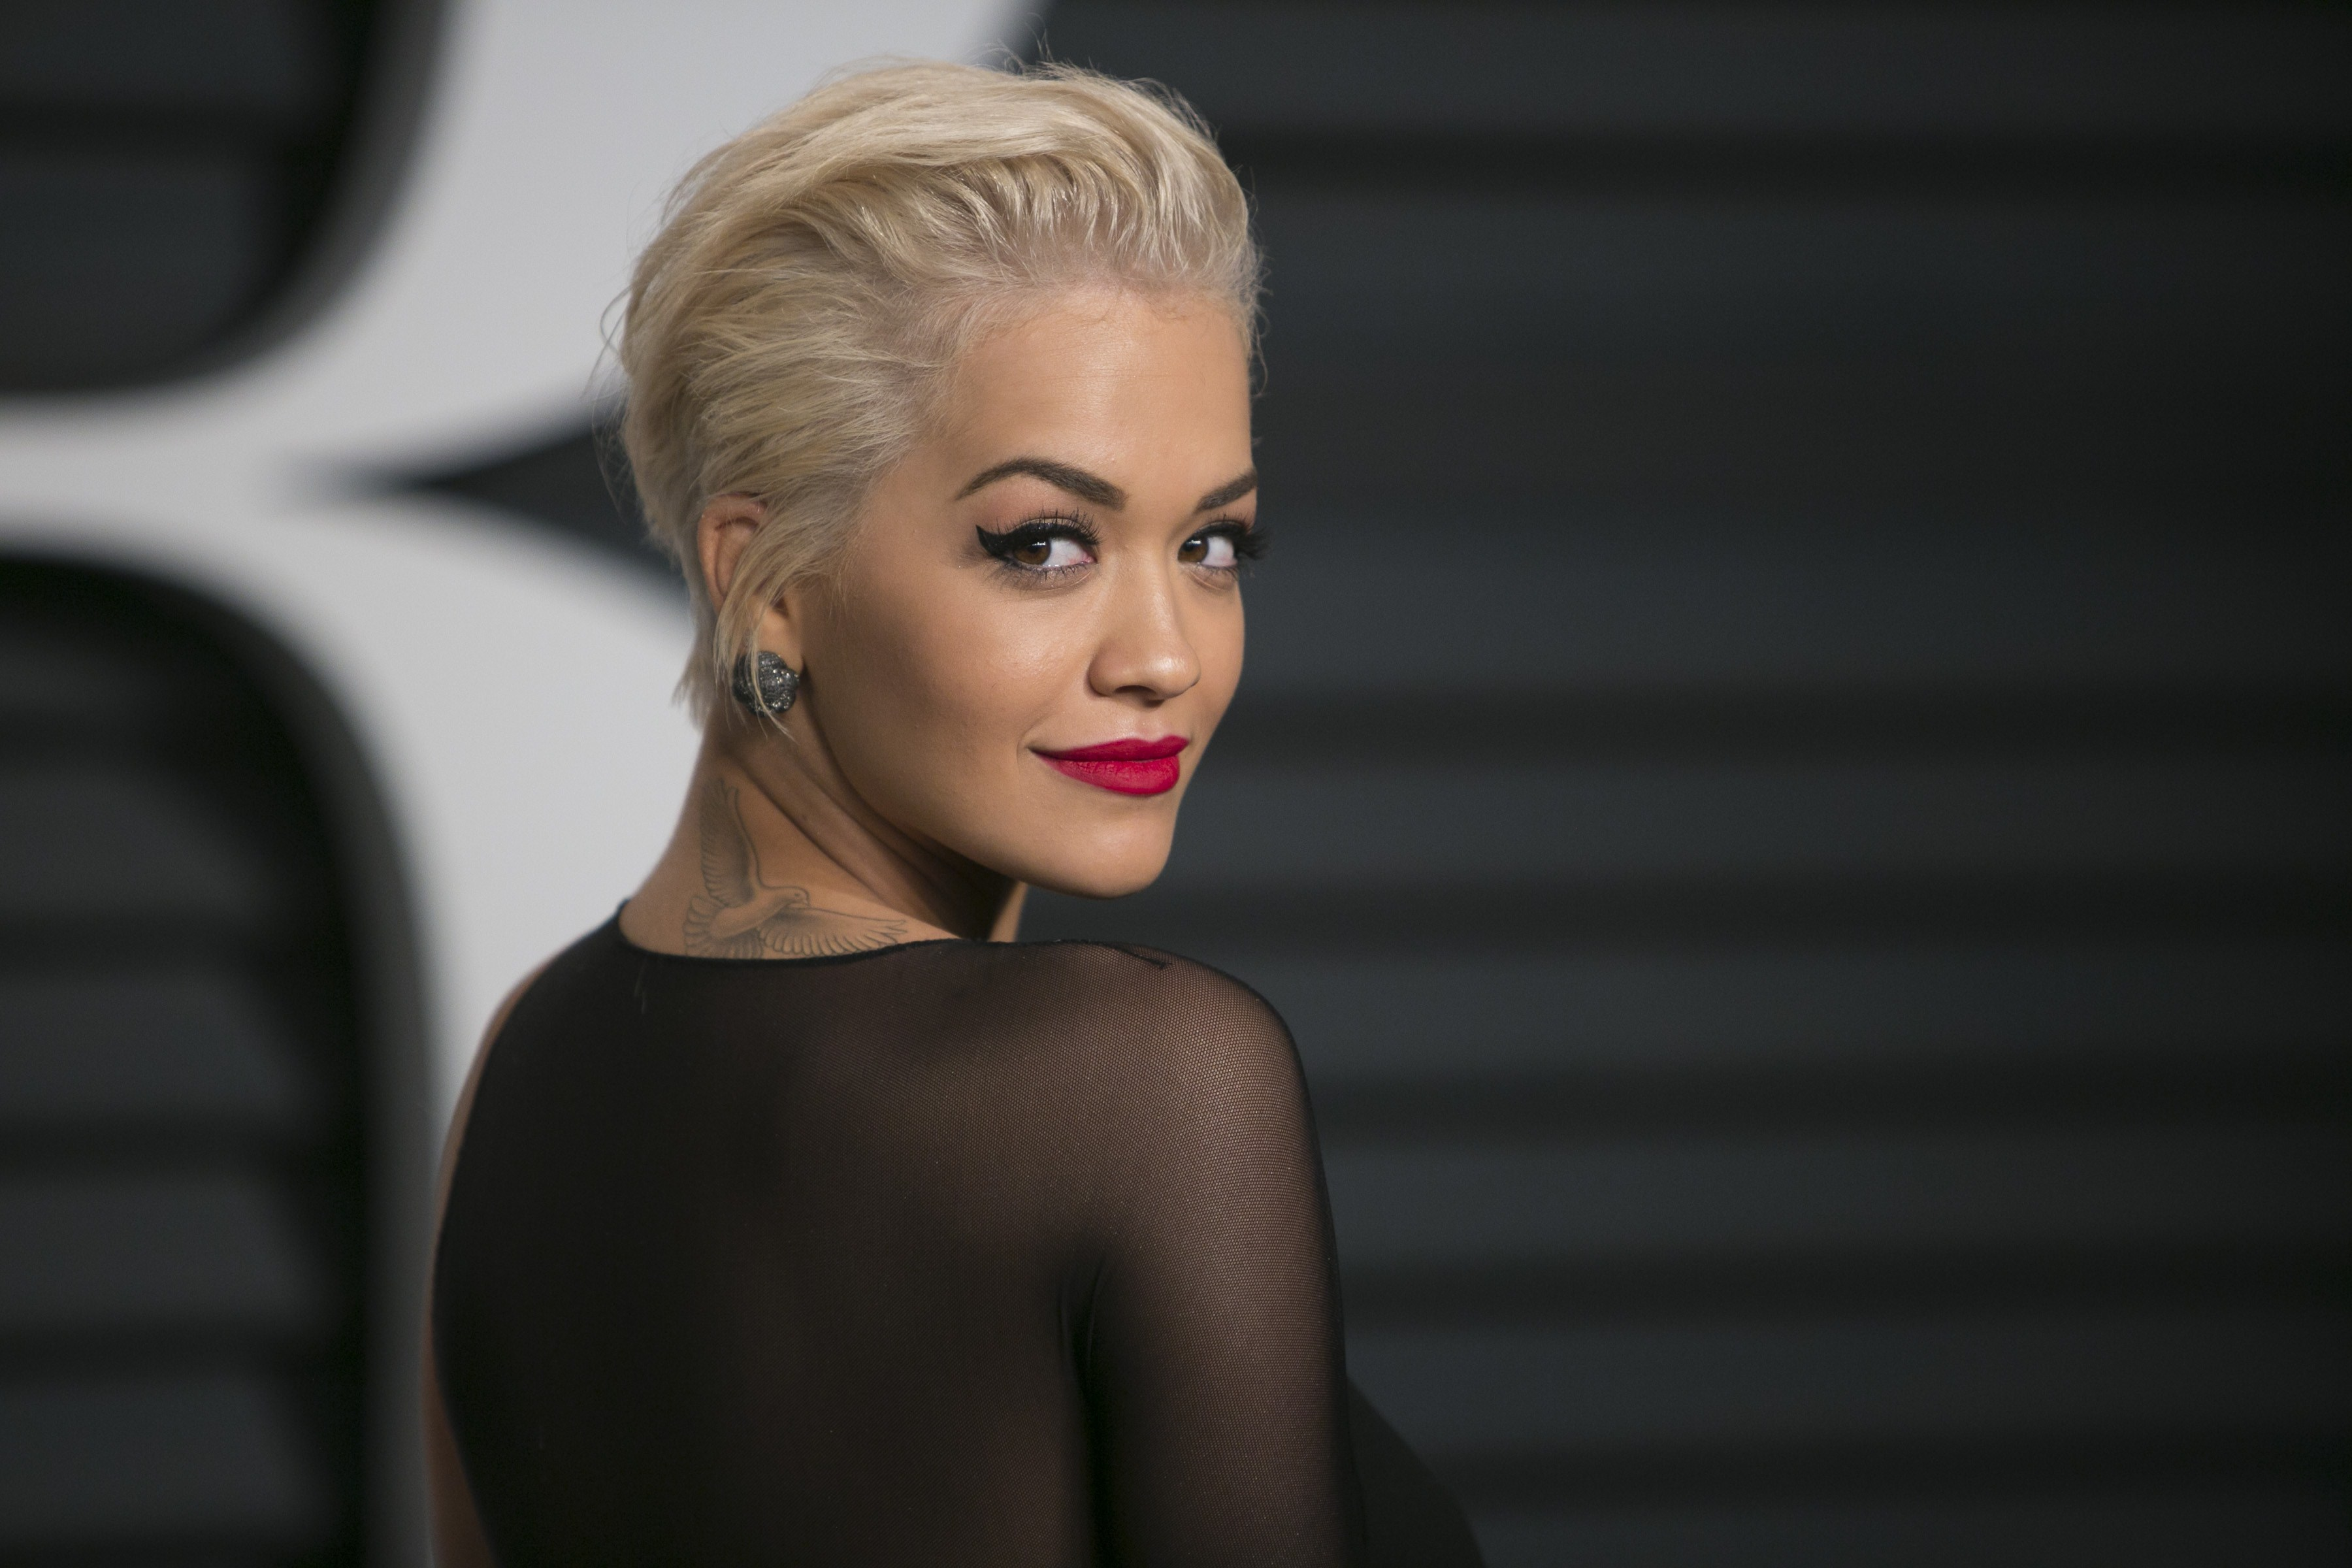 Rita Ora reveals why she was picked to replace Tyra Banks on America's Next Top Model